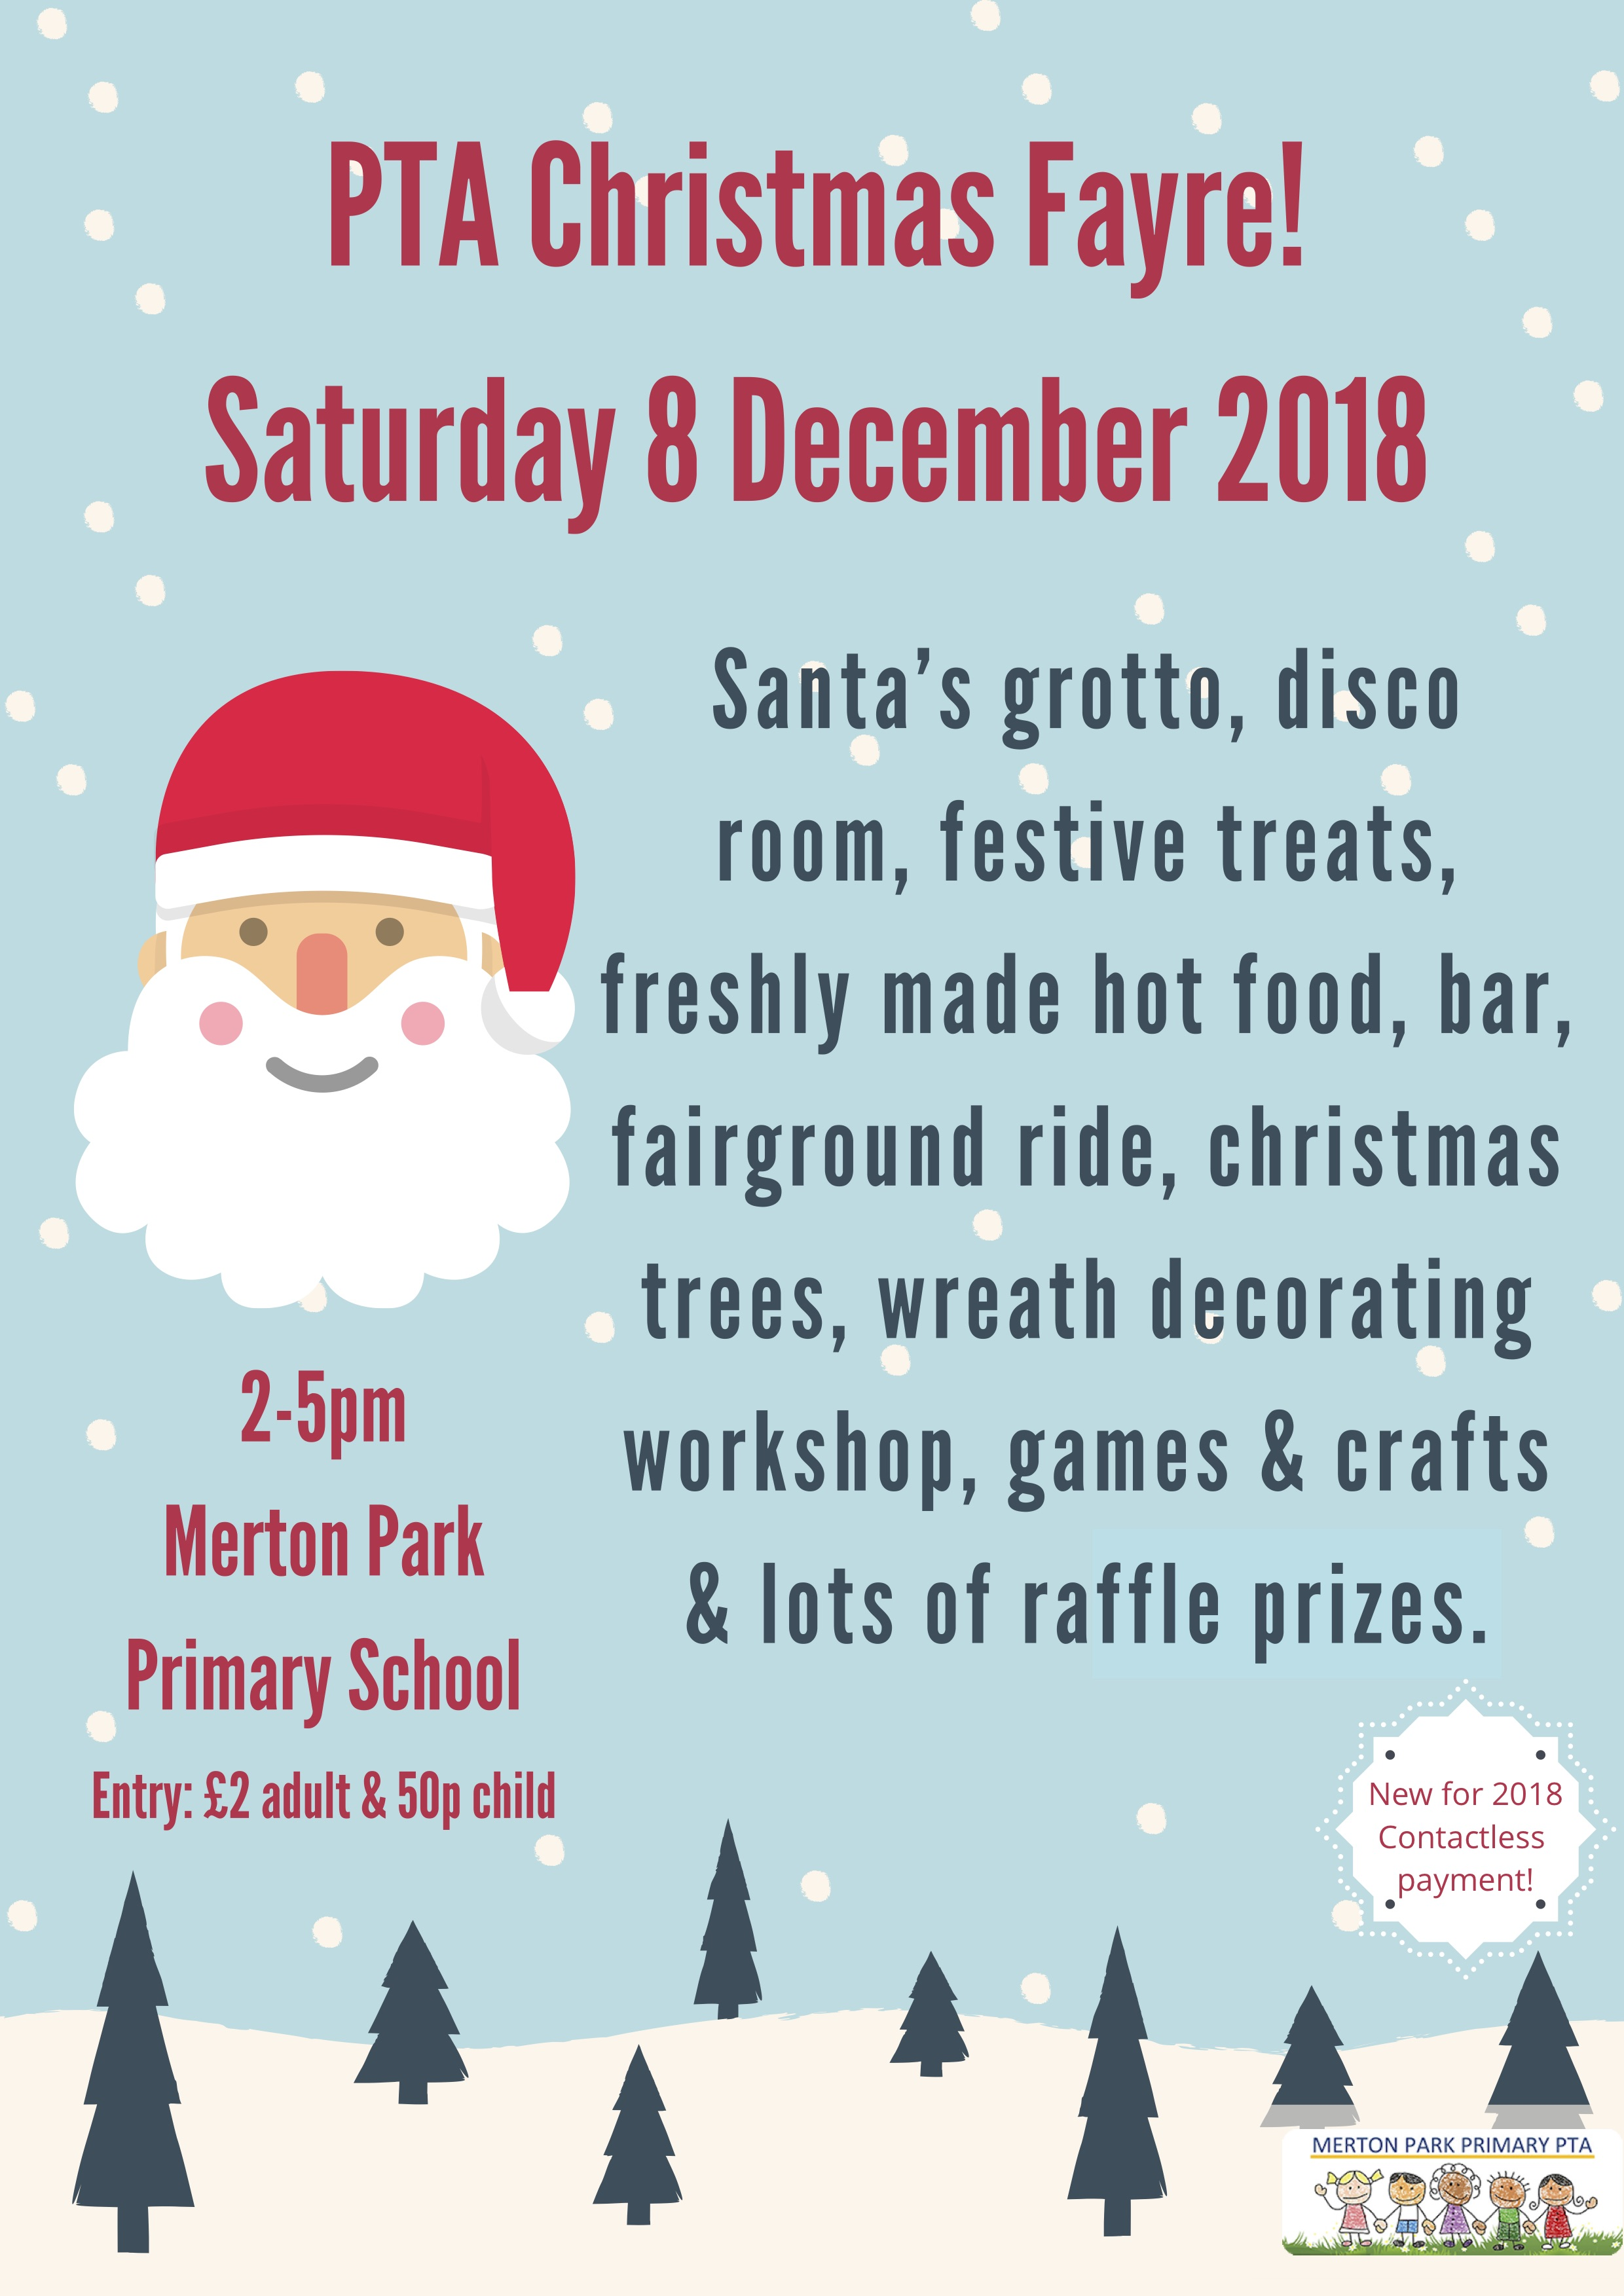 Christmas Date.Save The Date Christmas Fayre Saturday 8 December